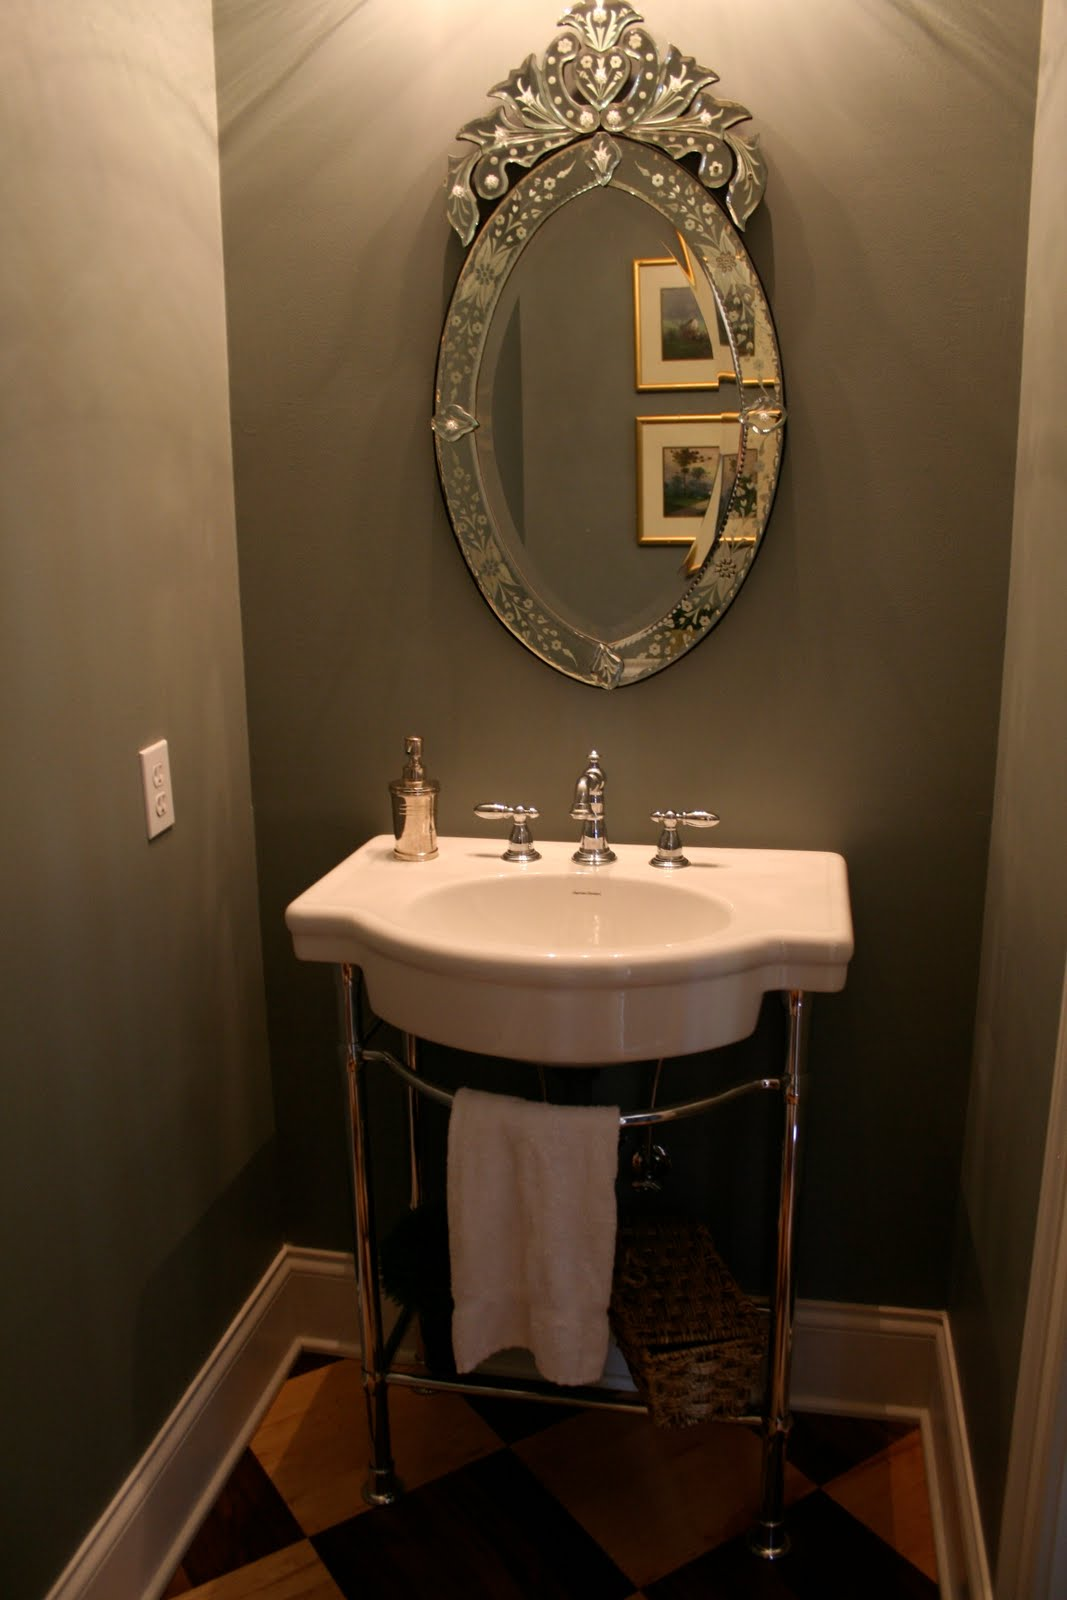 Design dump house 5 powder room before after Small bathroom mirror design